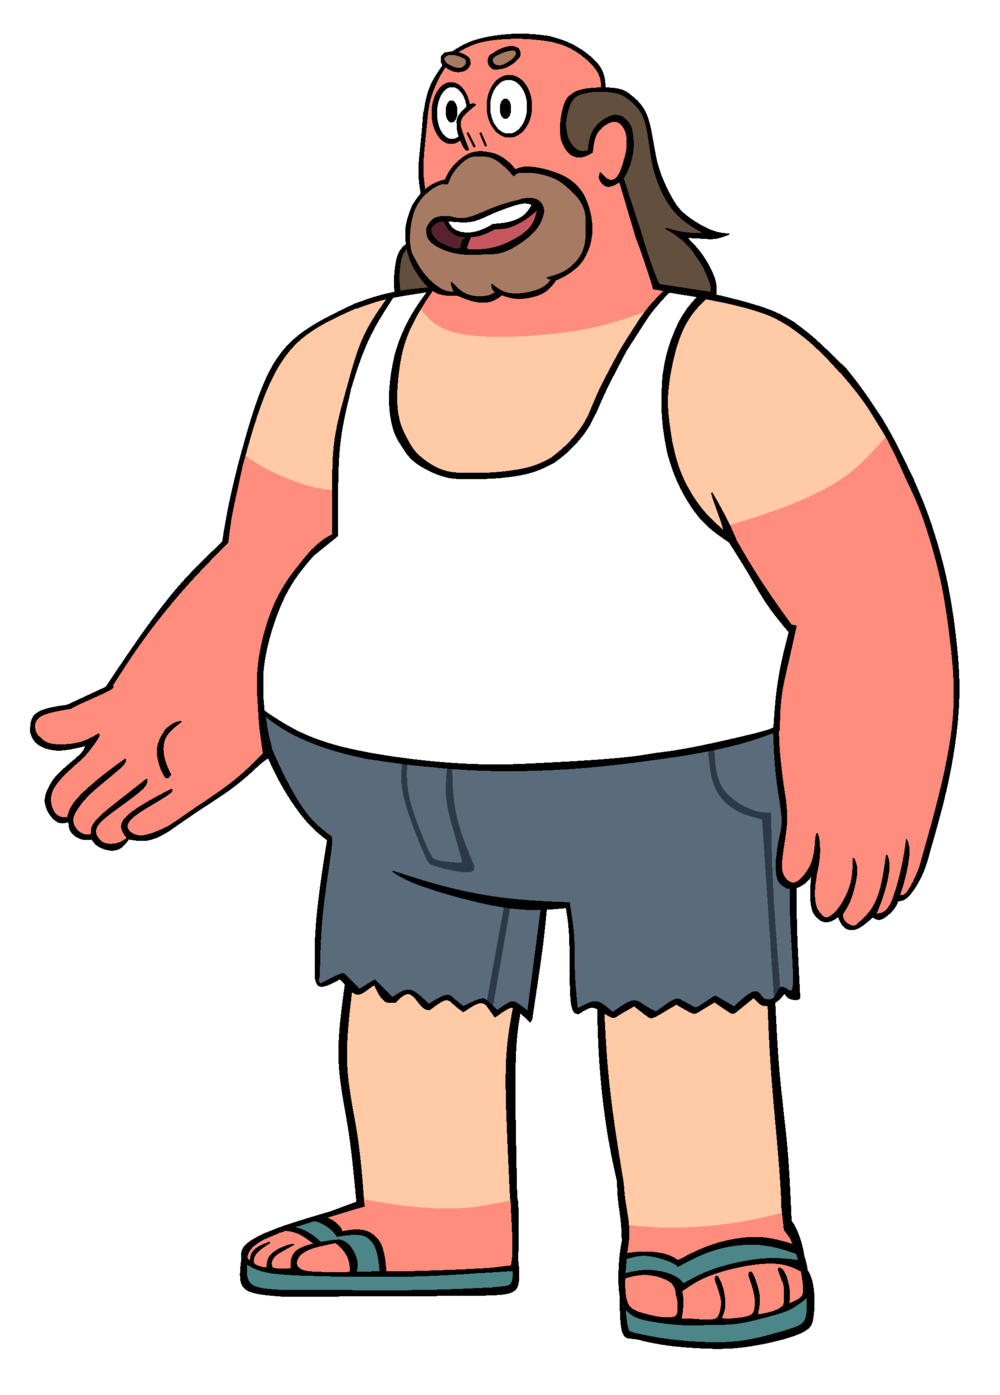 Professional clipart confident person. Greg universe boomerang from